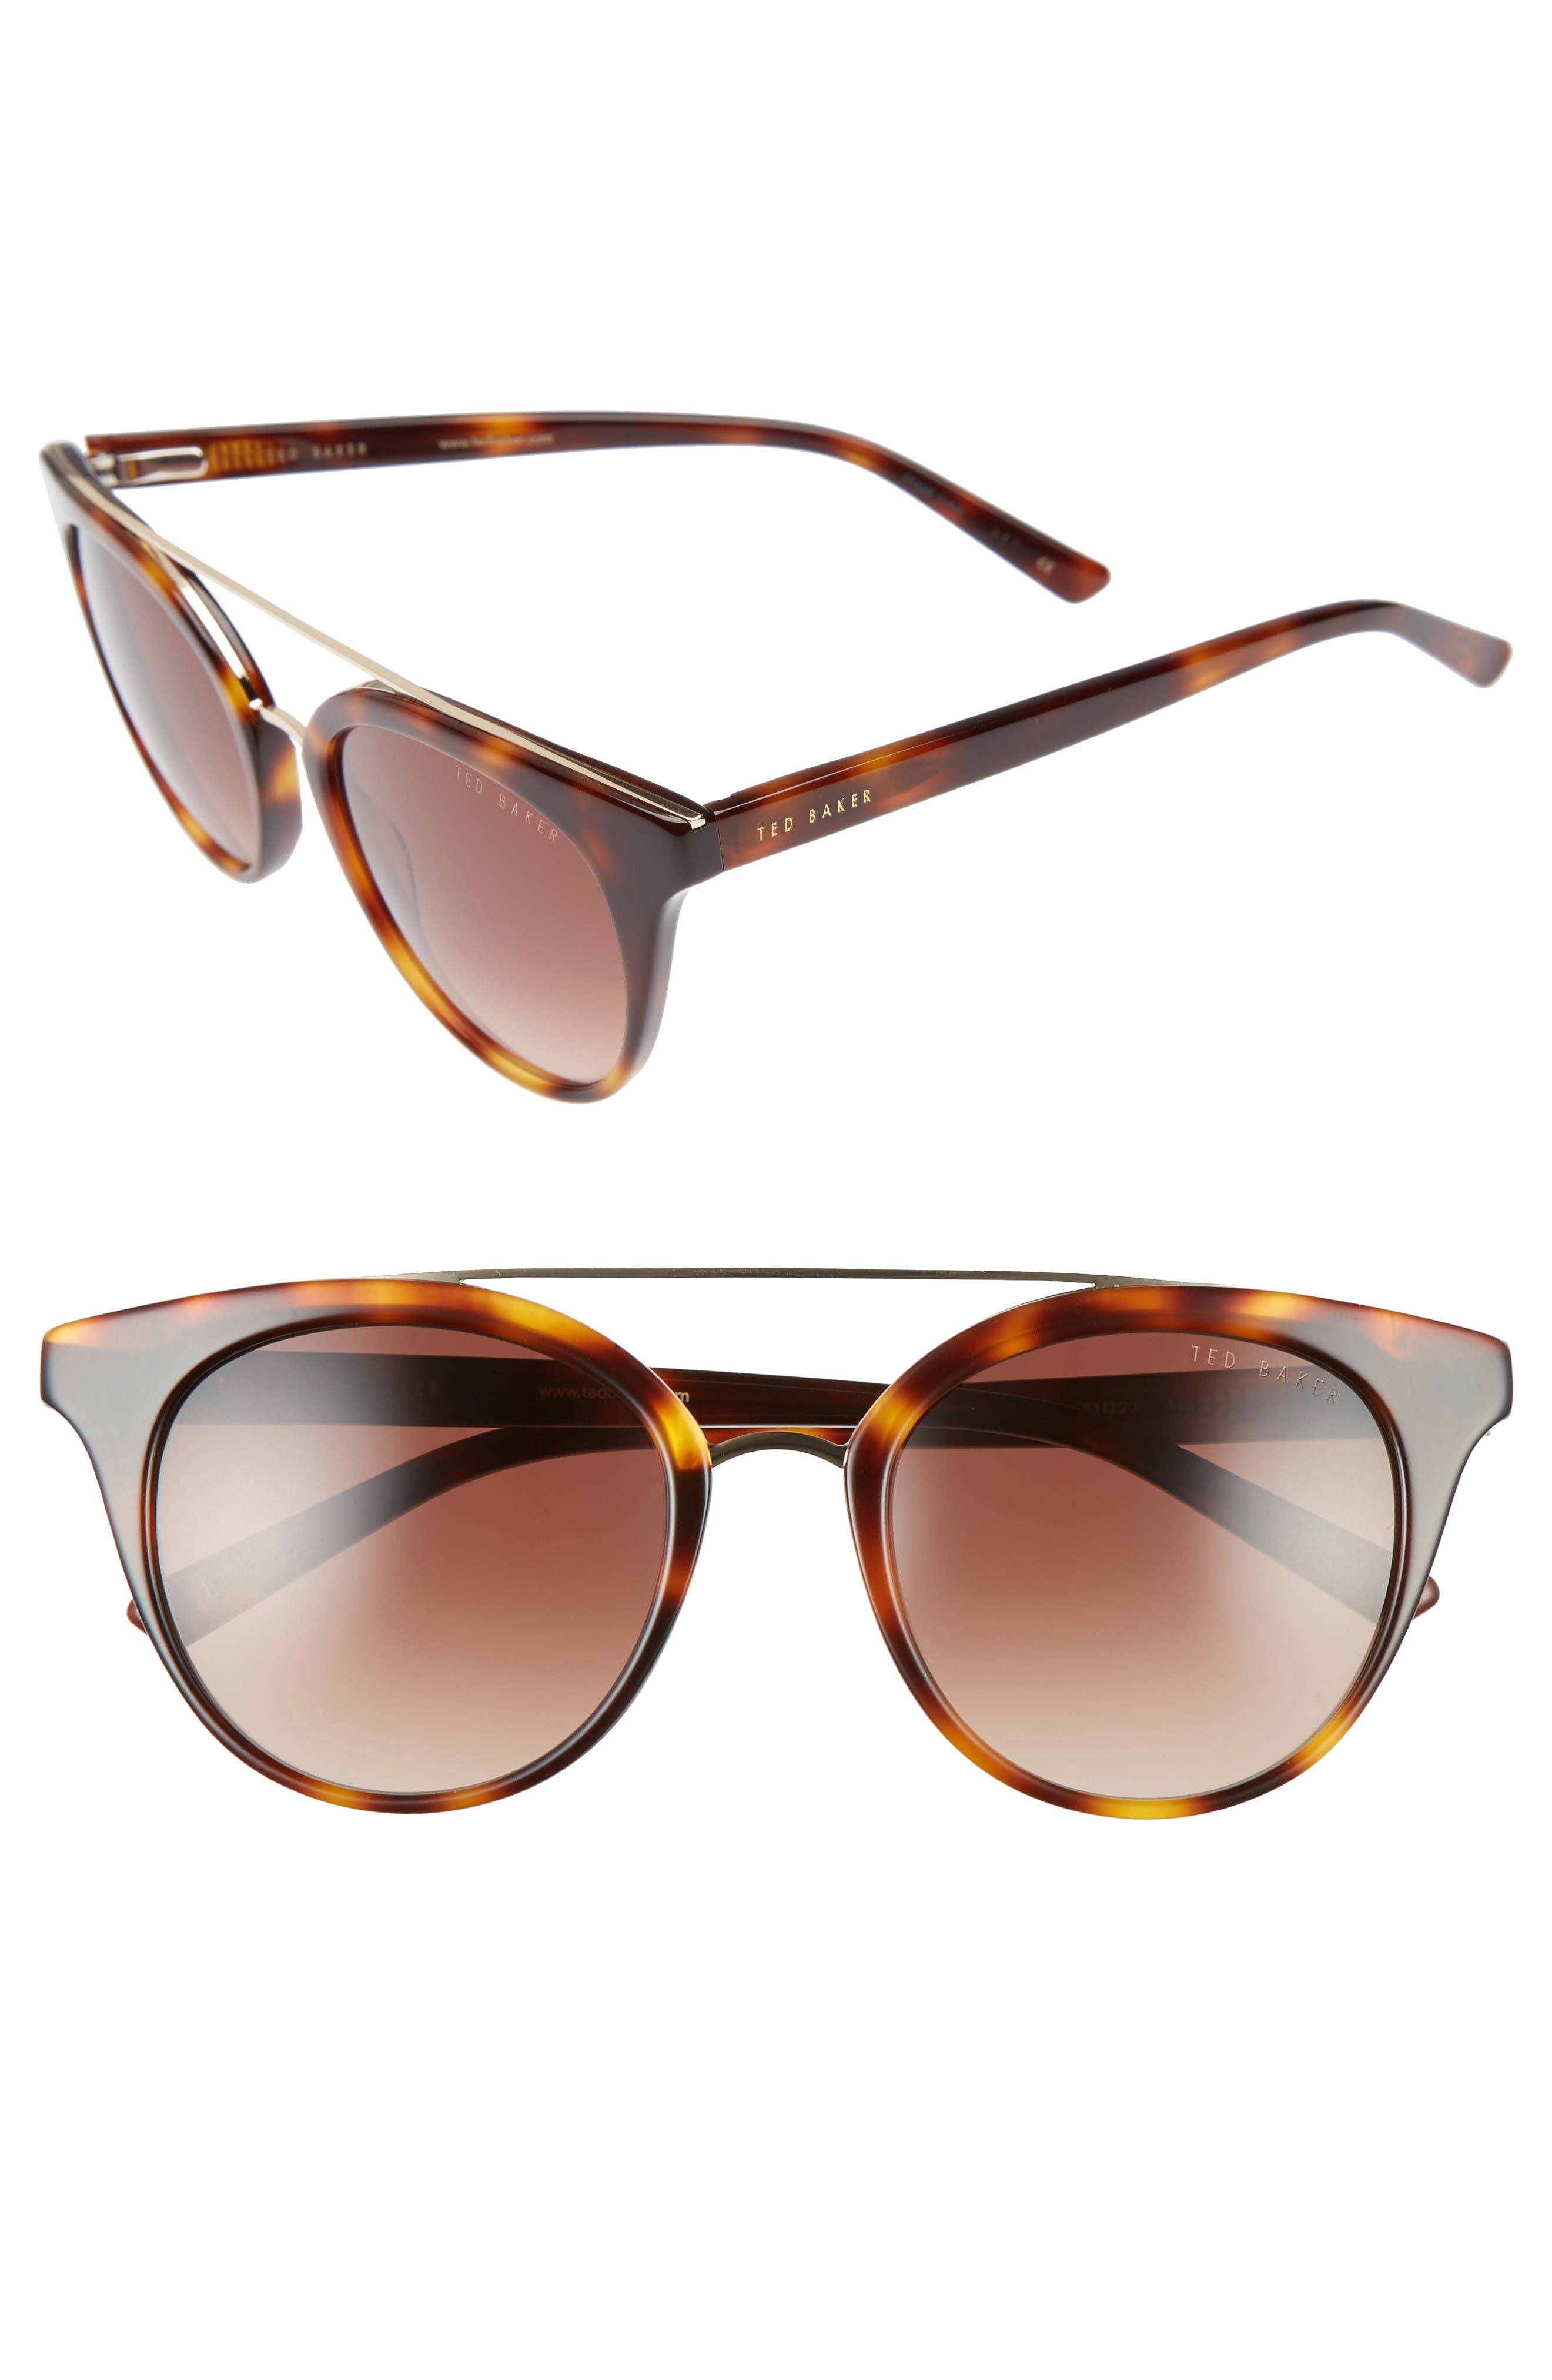 Main Image - Ted Baker London 51mm Gradient Lens Round Retro Sunglasses